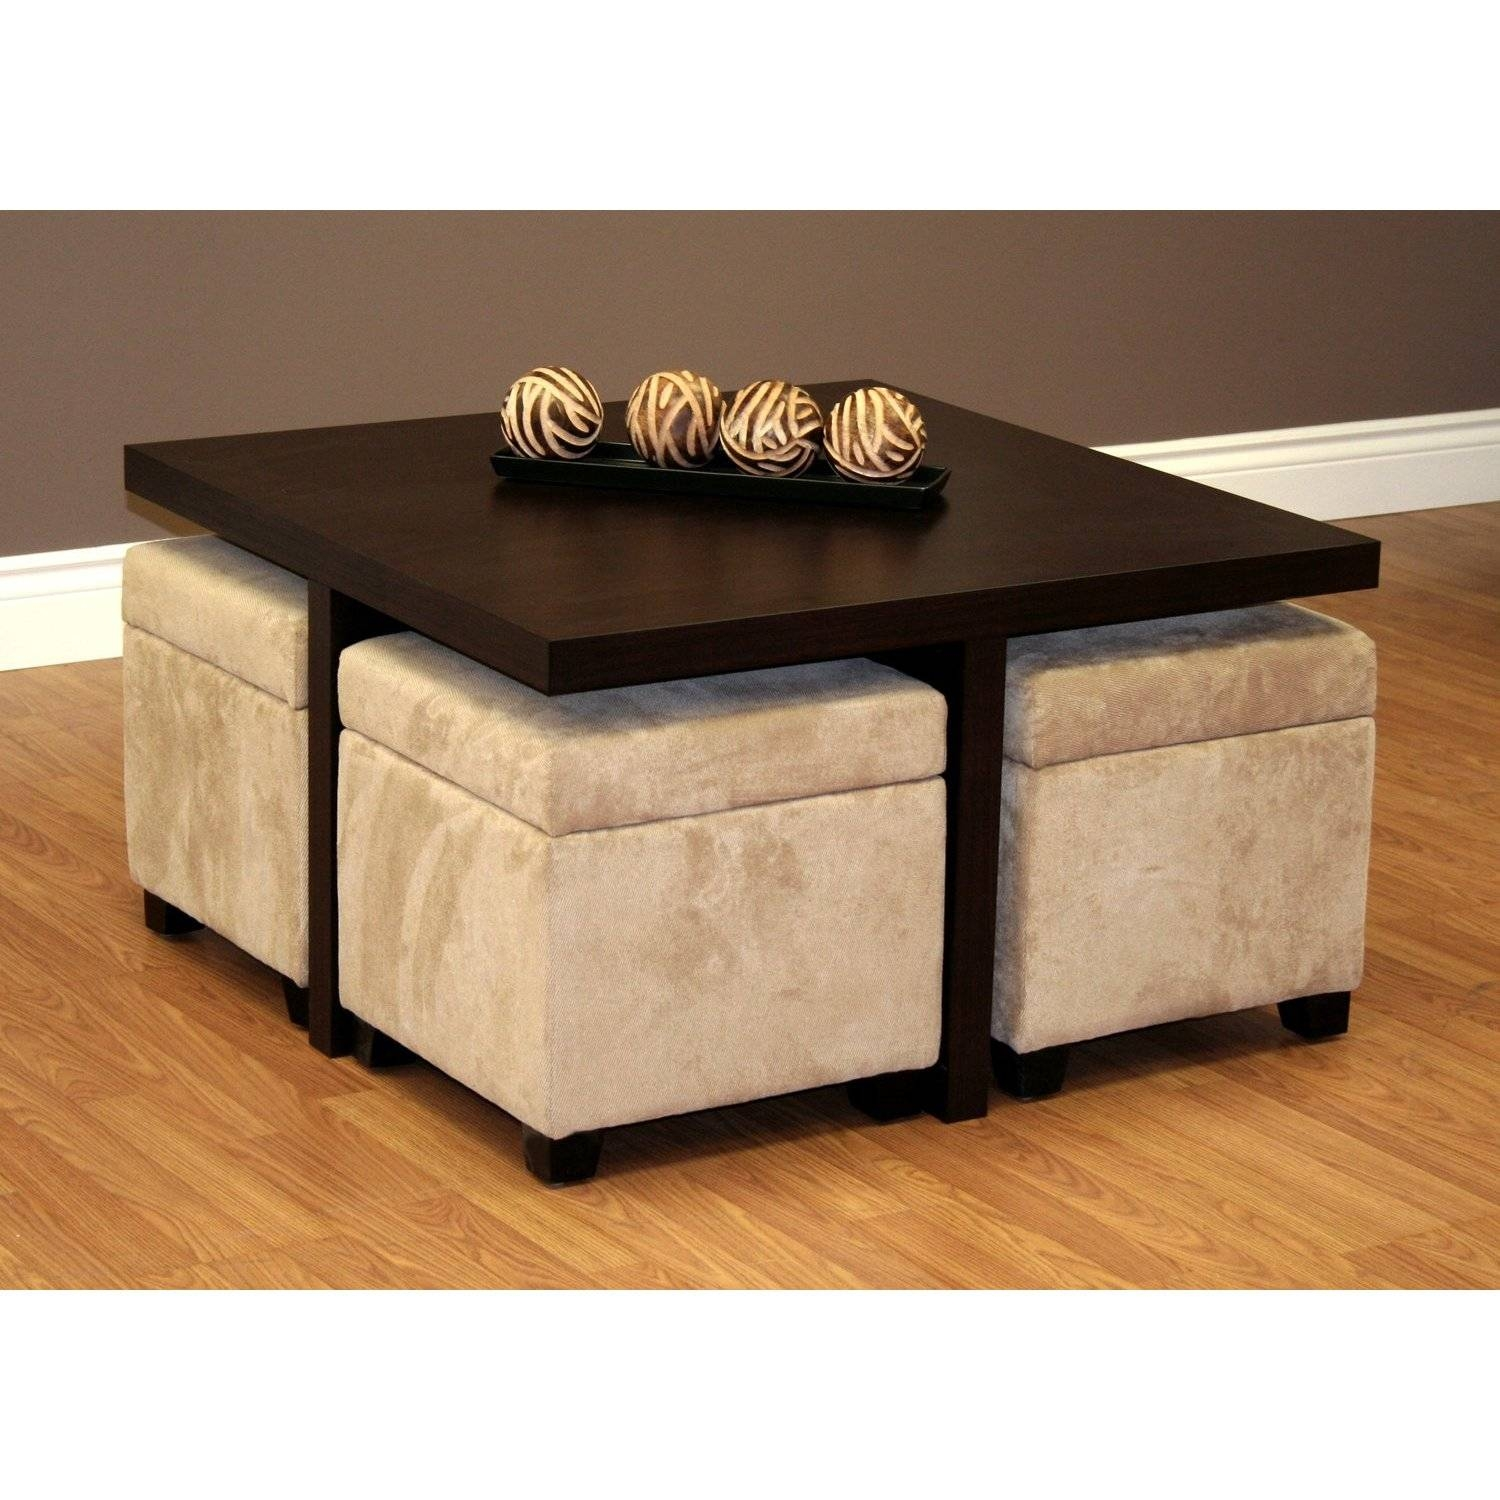 Furniture: Luxury Coffee Table With Stools For Living Room within Round Coffee Table Storages (Image 18 of 30)